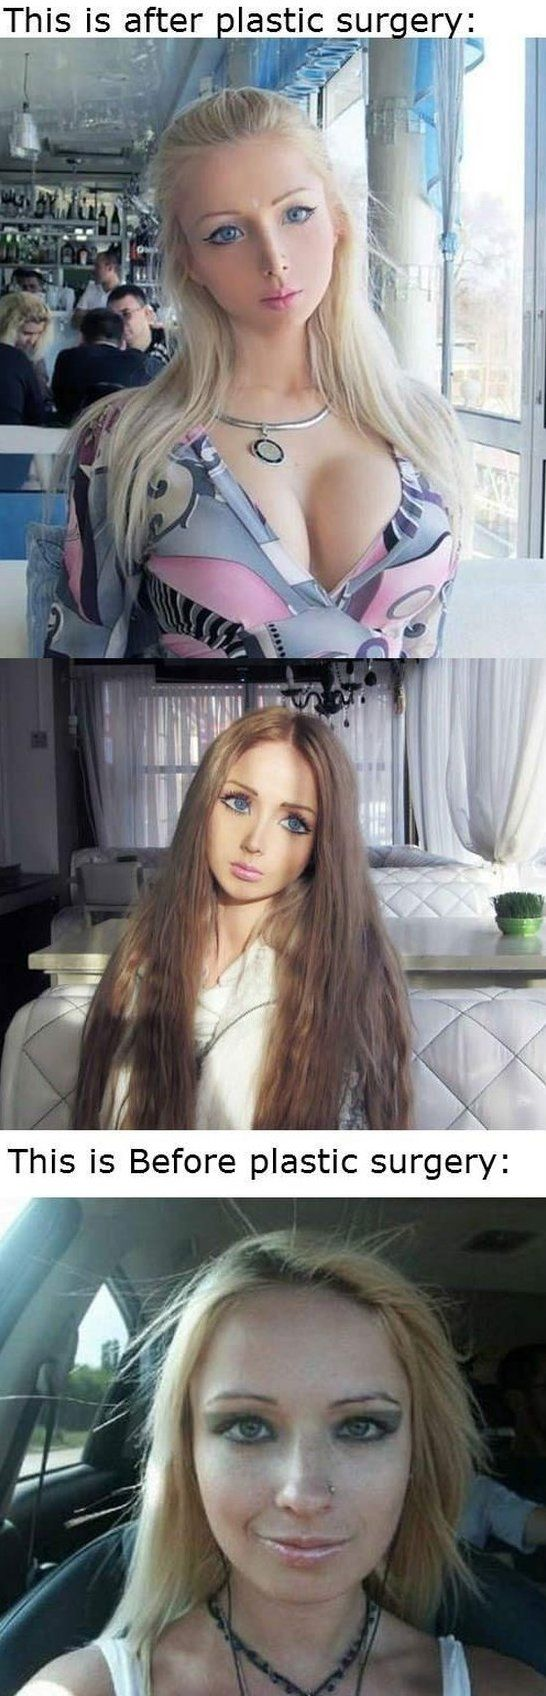 Real life barbie<< This is BEYOND sad....Why would you want to look like that in the first place...? wow...this makes me want to cry..